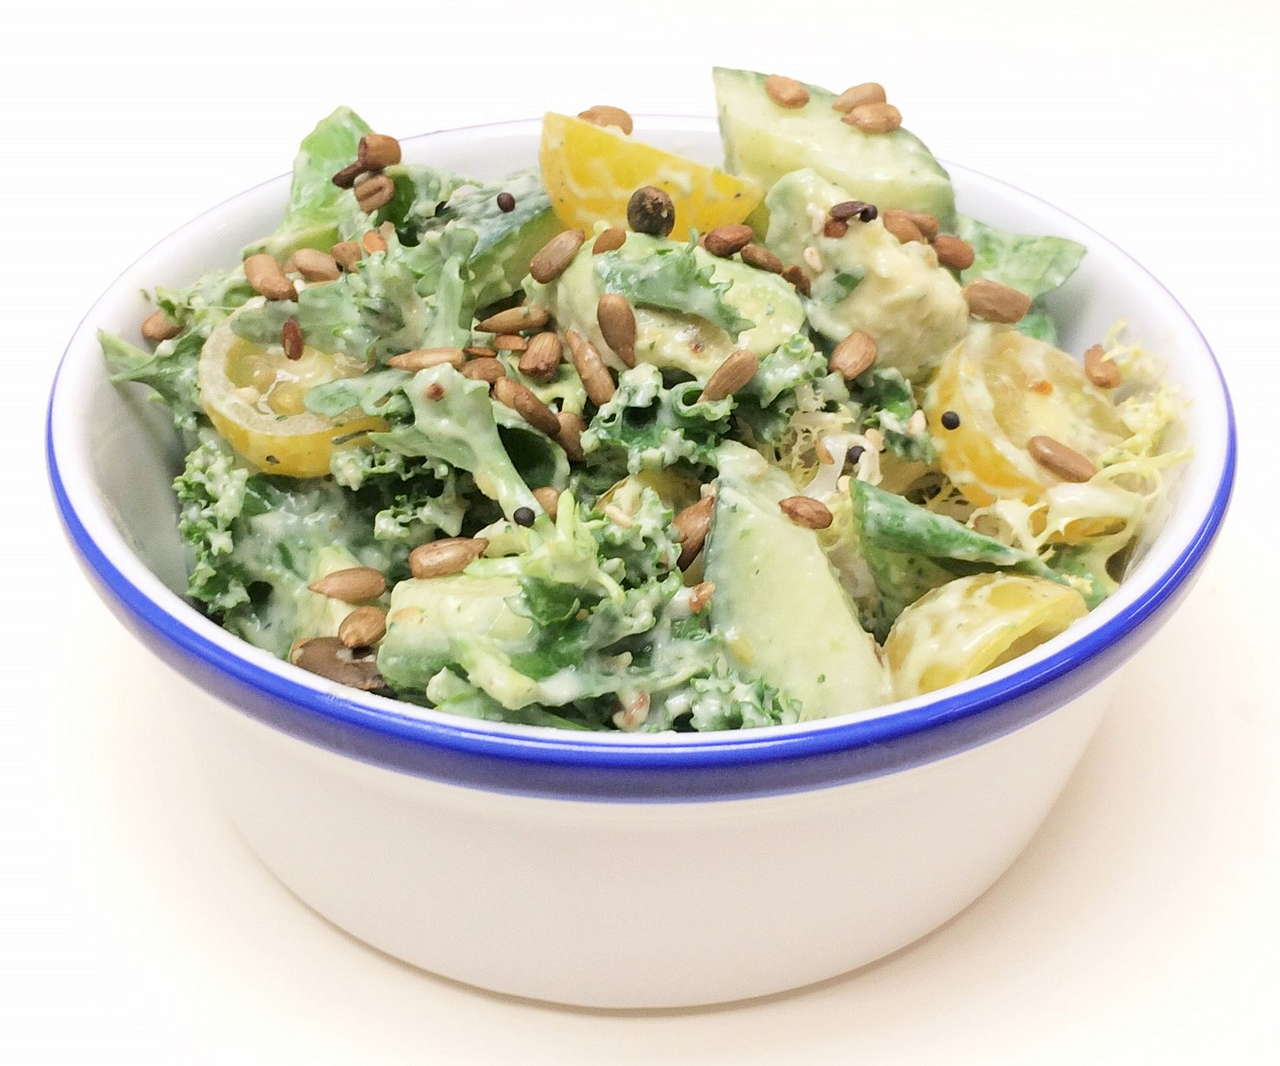 kale & avocado salad with green goddess dressing